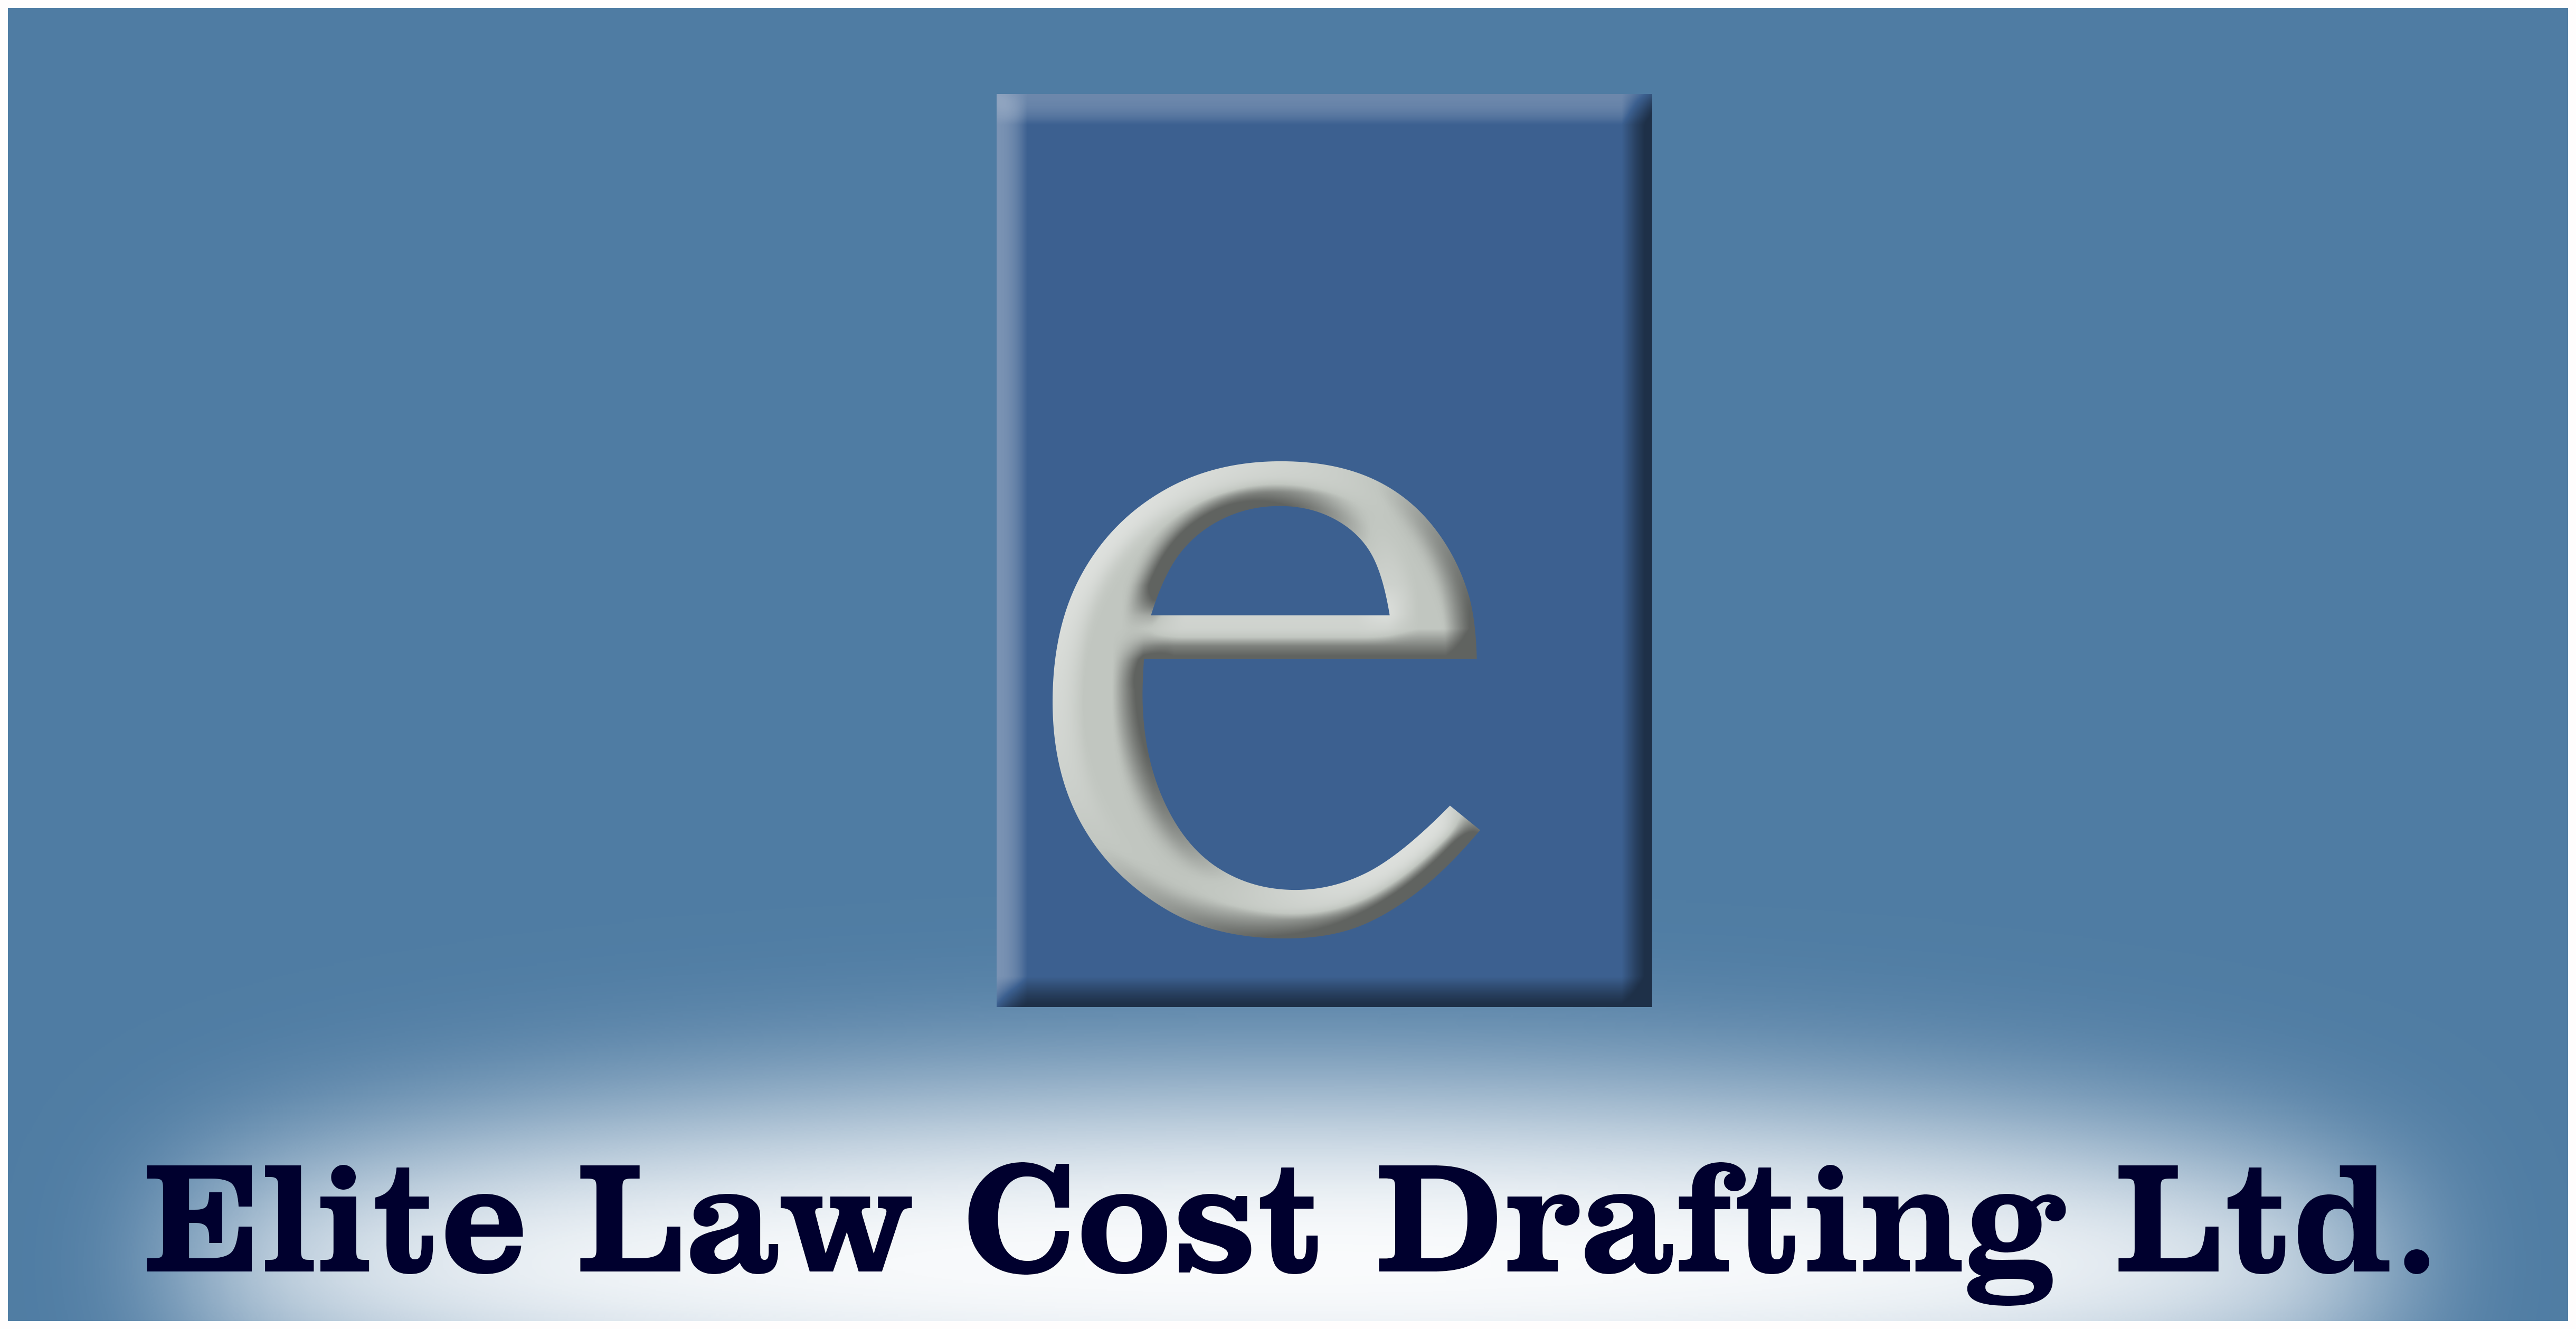 Elite Law Costs Drafting